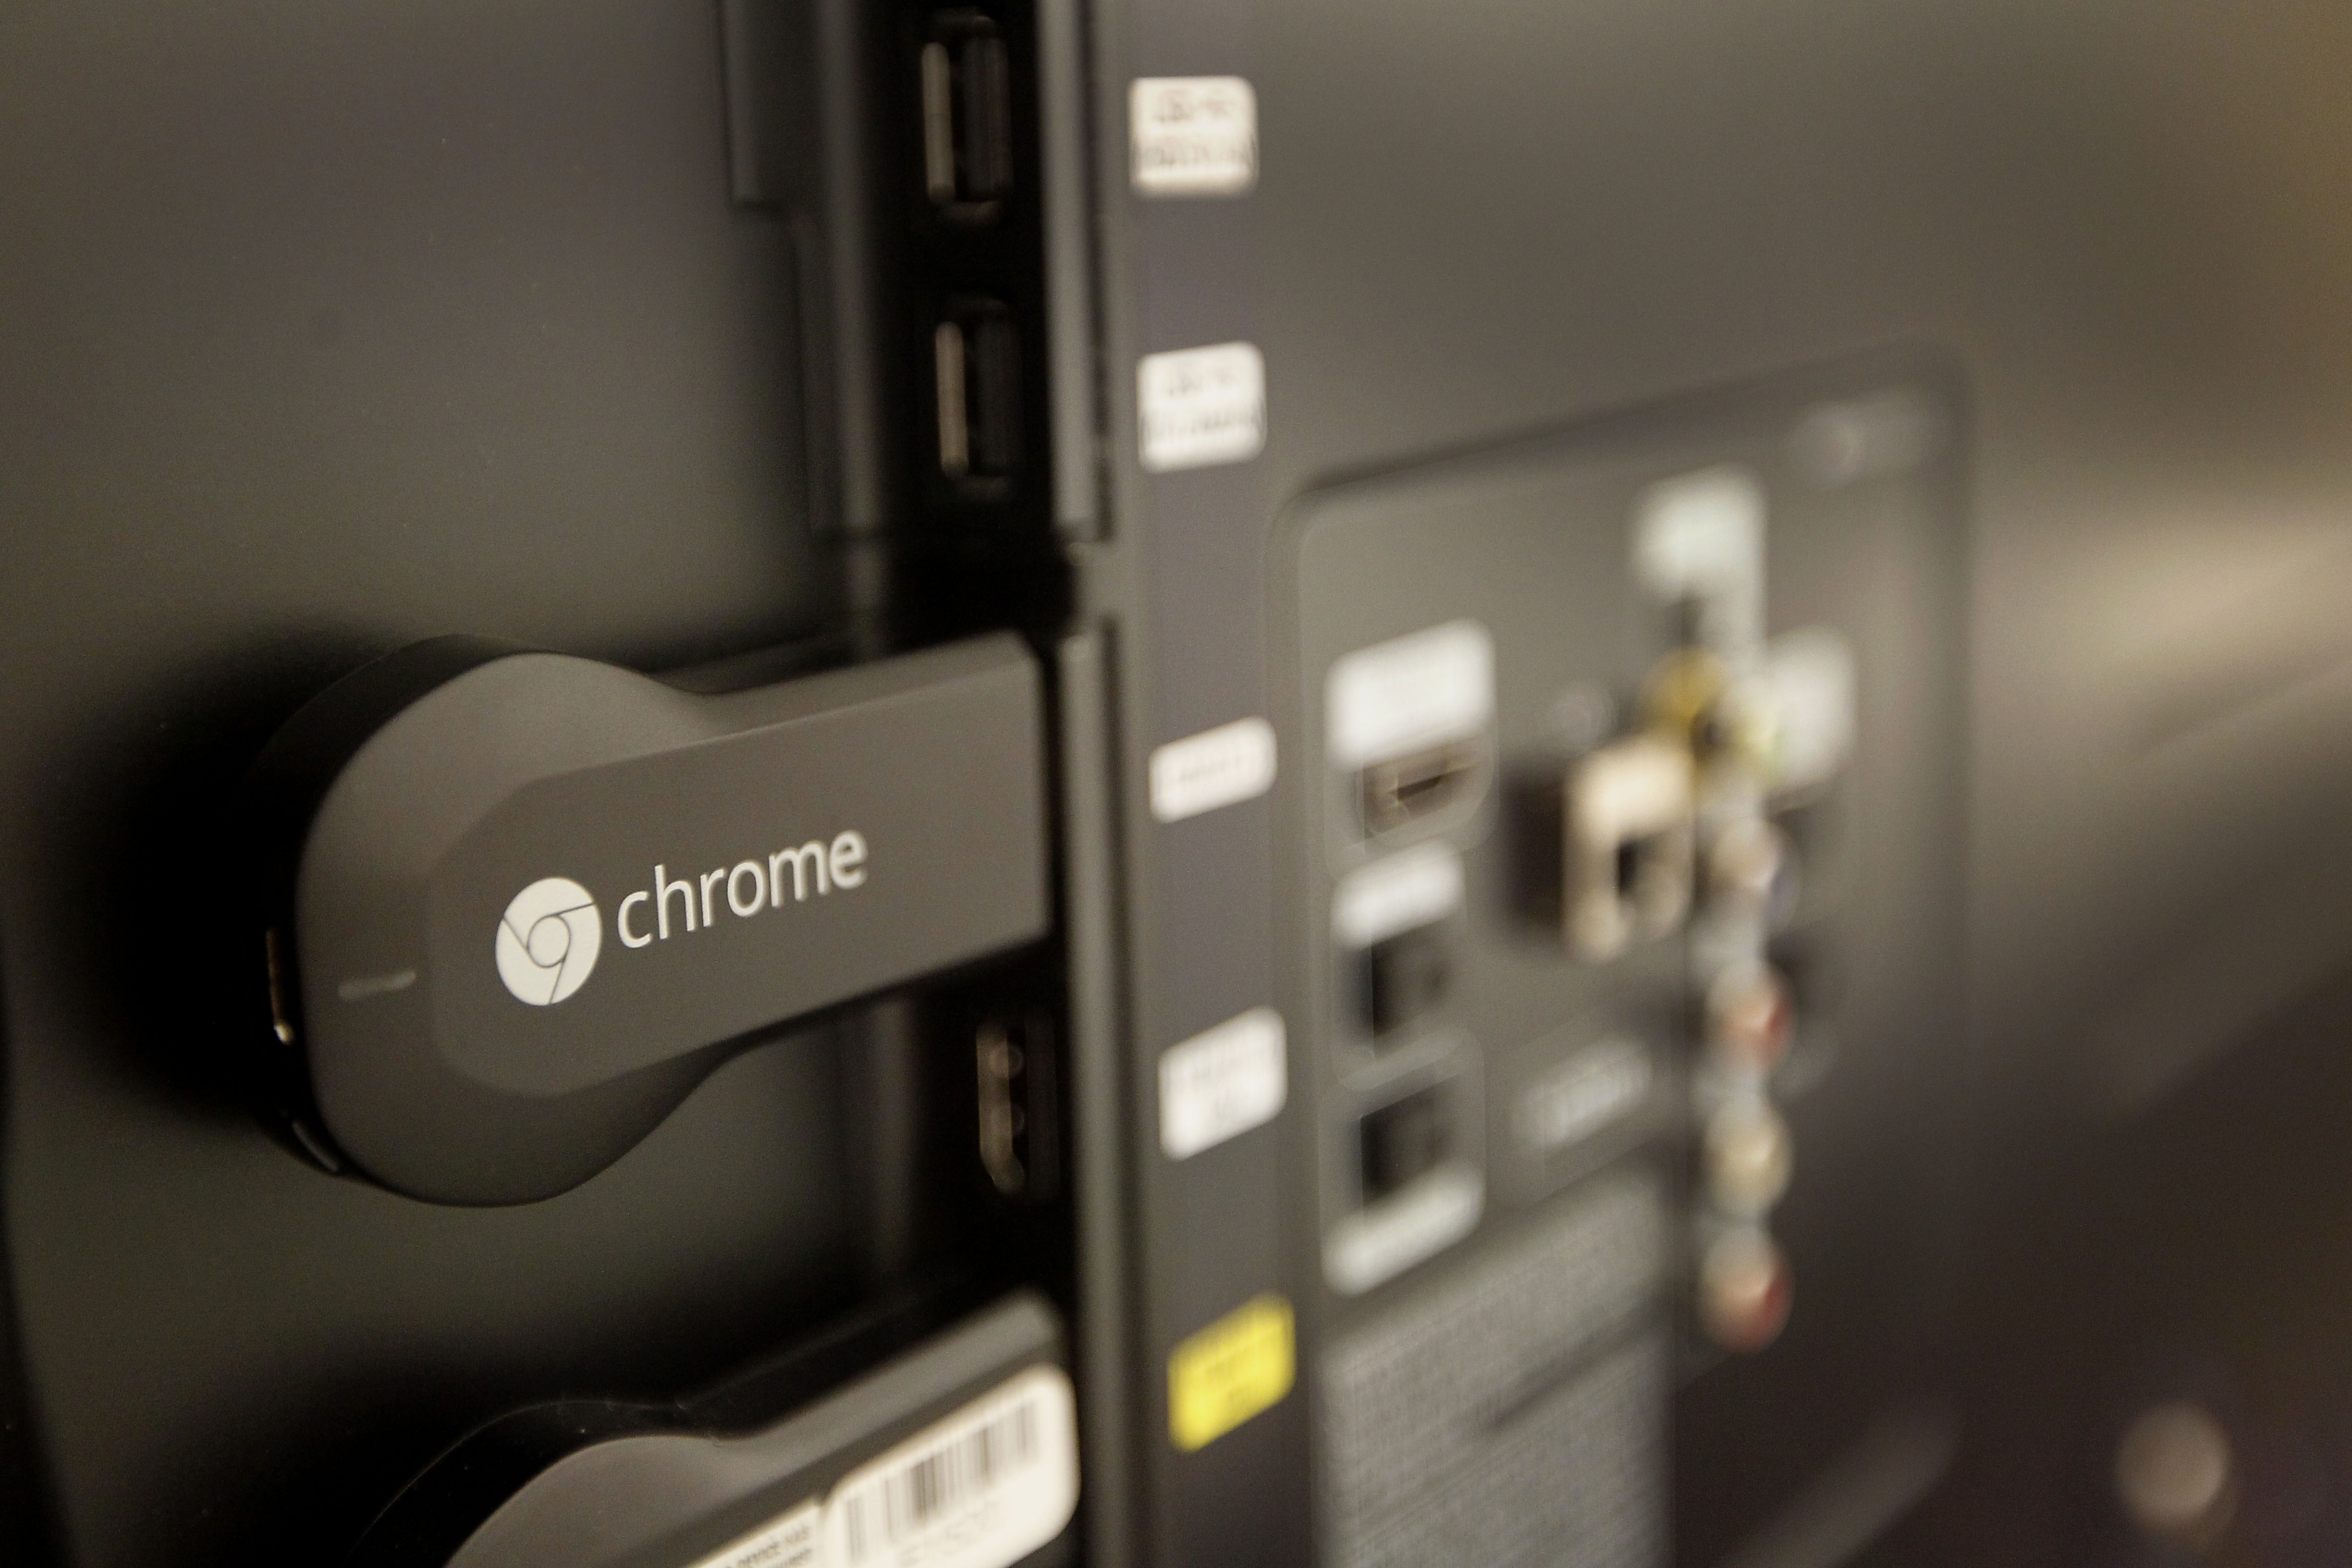 The new Google Chromecast is connected to the the back of a television during an event in San Francisco, California, U.S., on Wednesday, July 24, 2013.